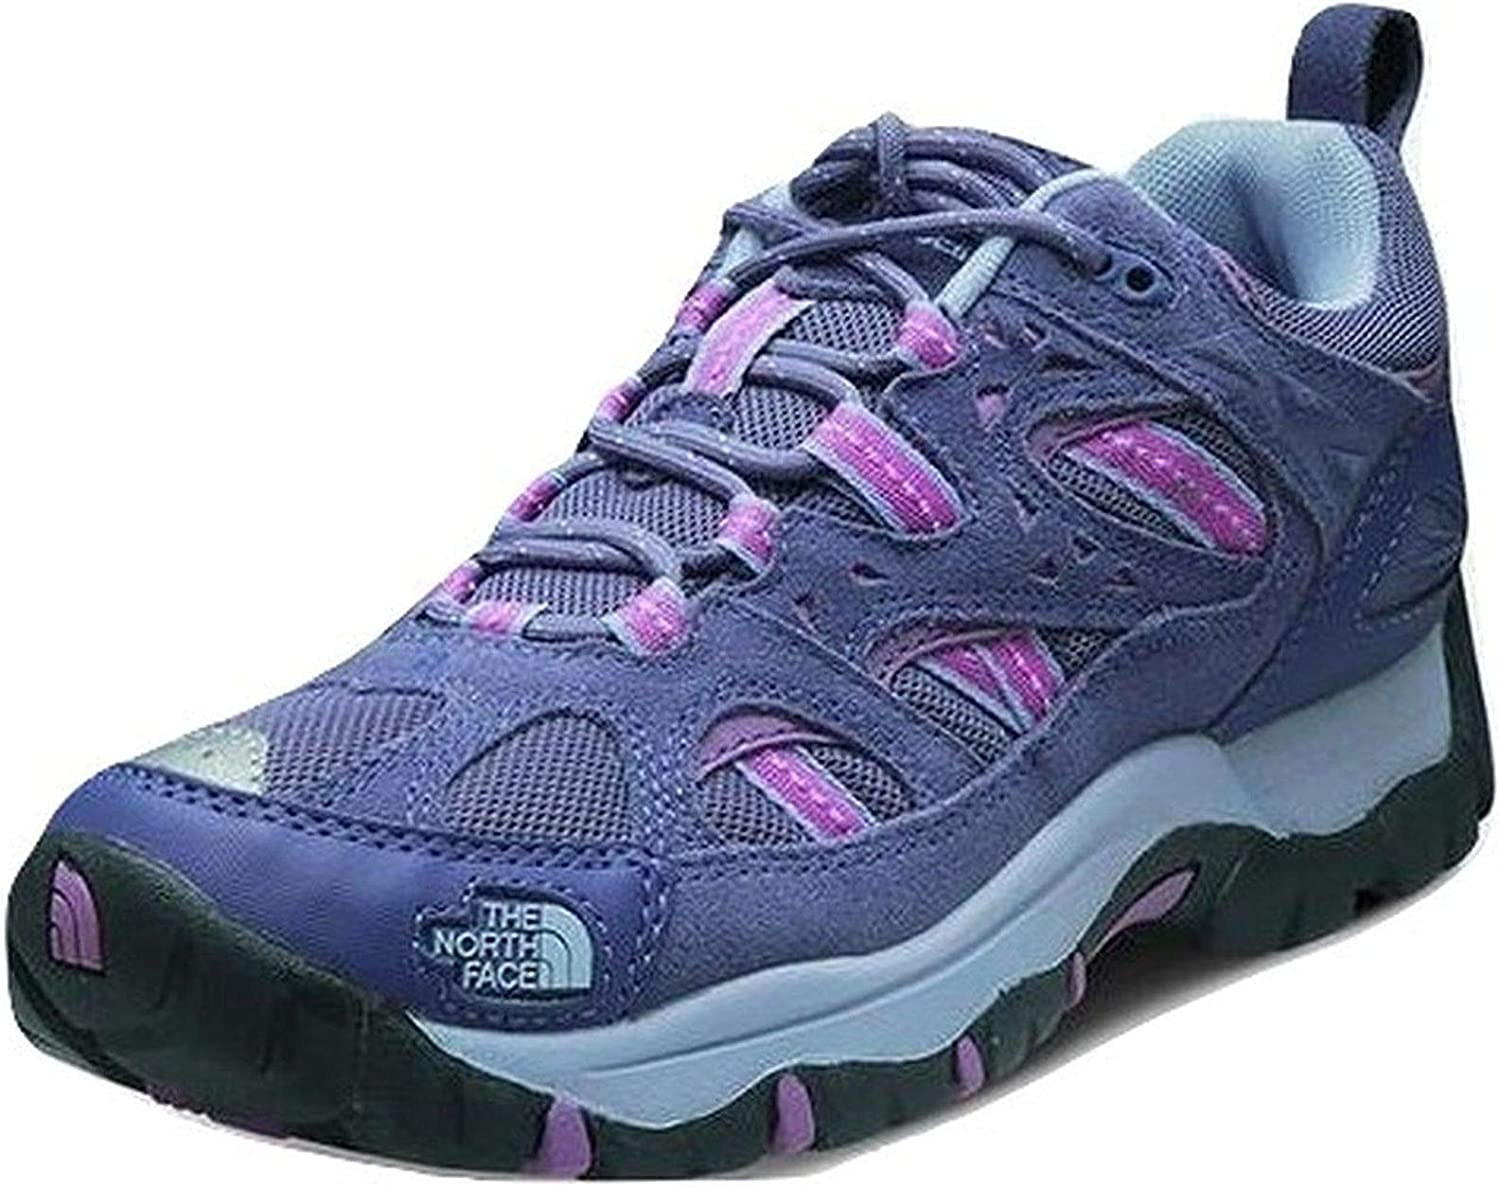 The North Face W Strive III Zapatos de Trail Running Mujer Azul ...